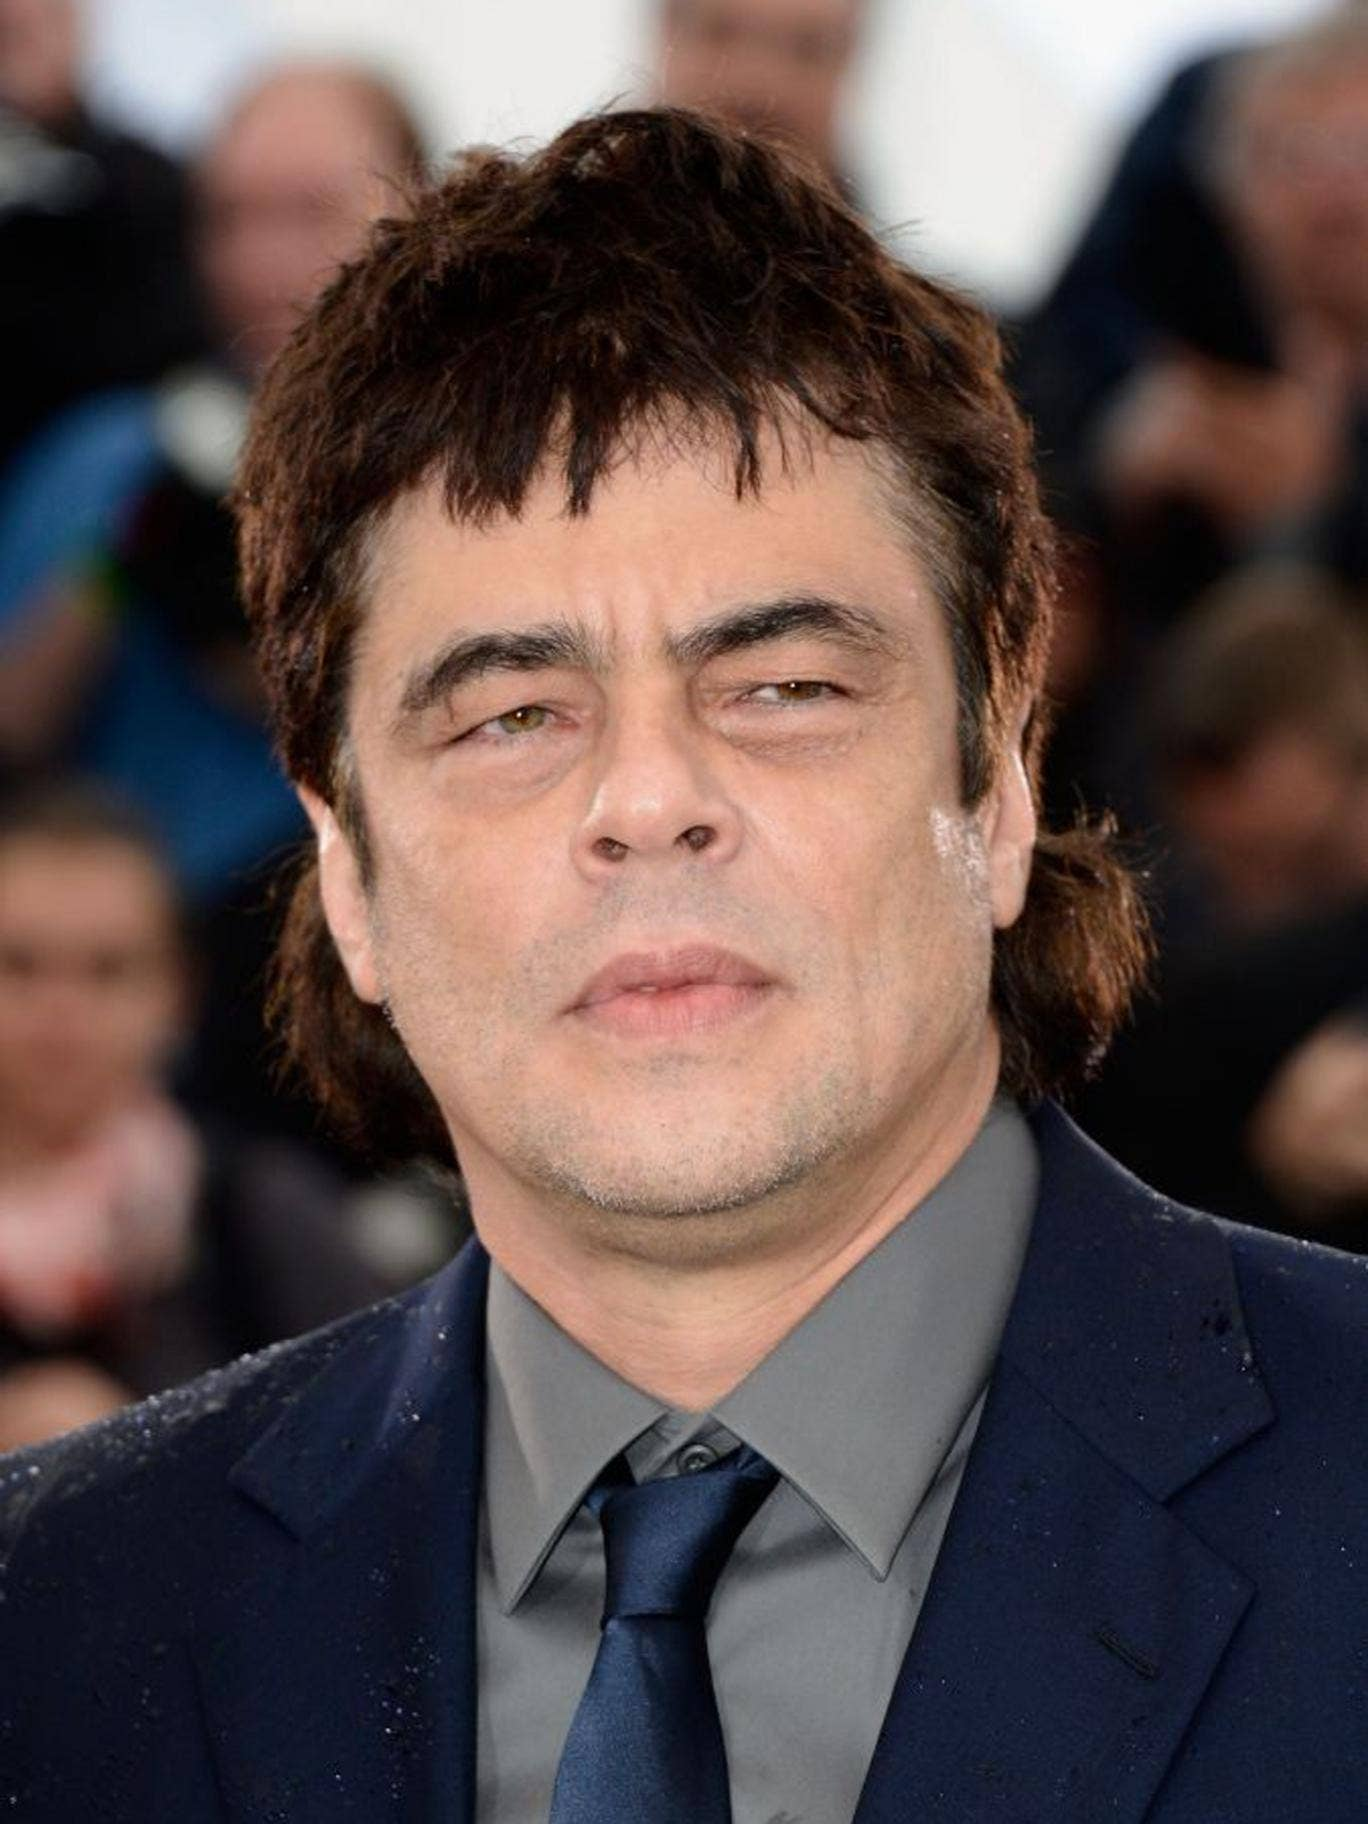 Benicio Del Toro at the 'Jimmy P: Psychotherapy Of A Plains Indian' photocall in Cannes